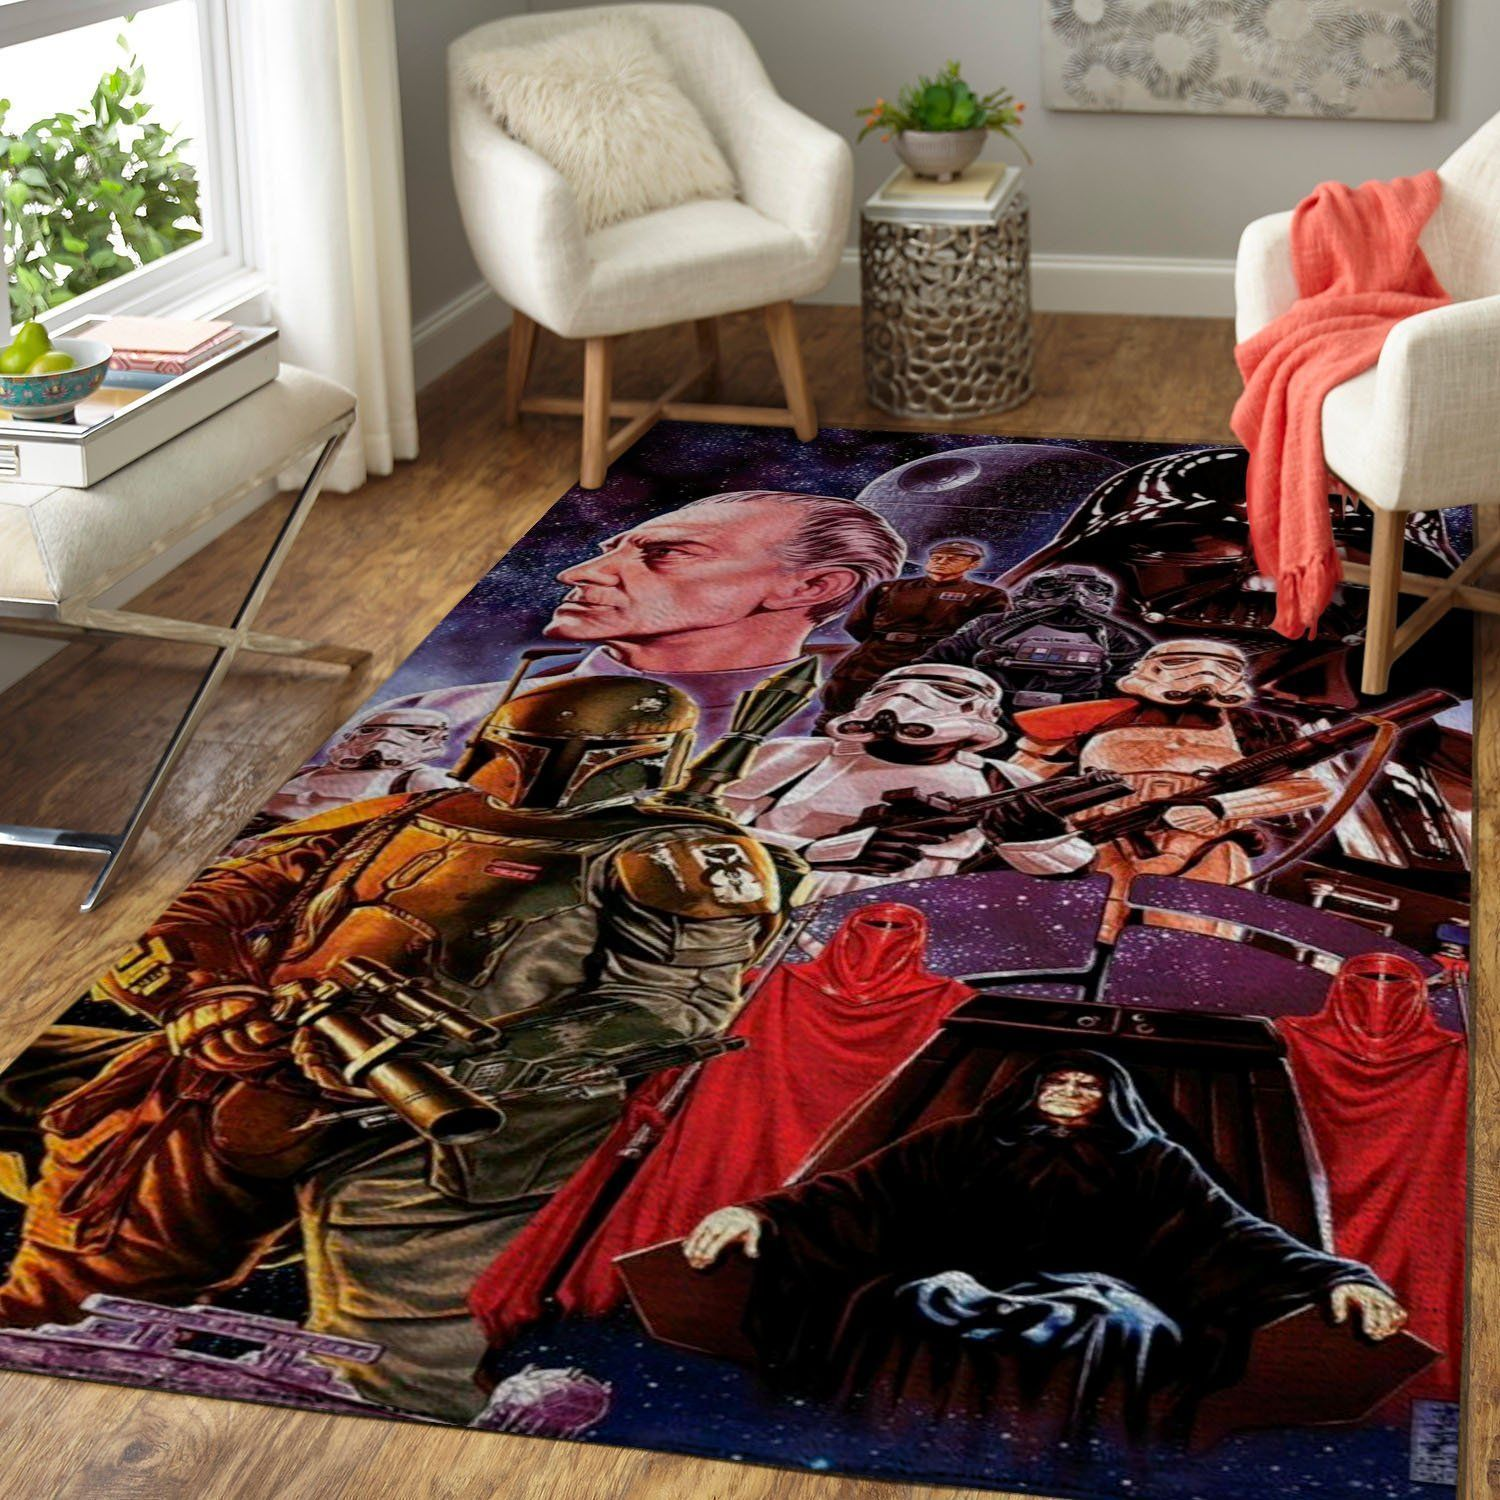 Star Wars Area Rugs, Movie Living Room Carpet, Custom Floor Decor